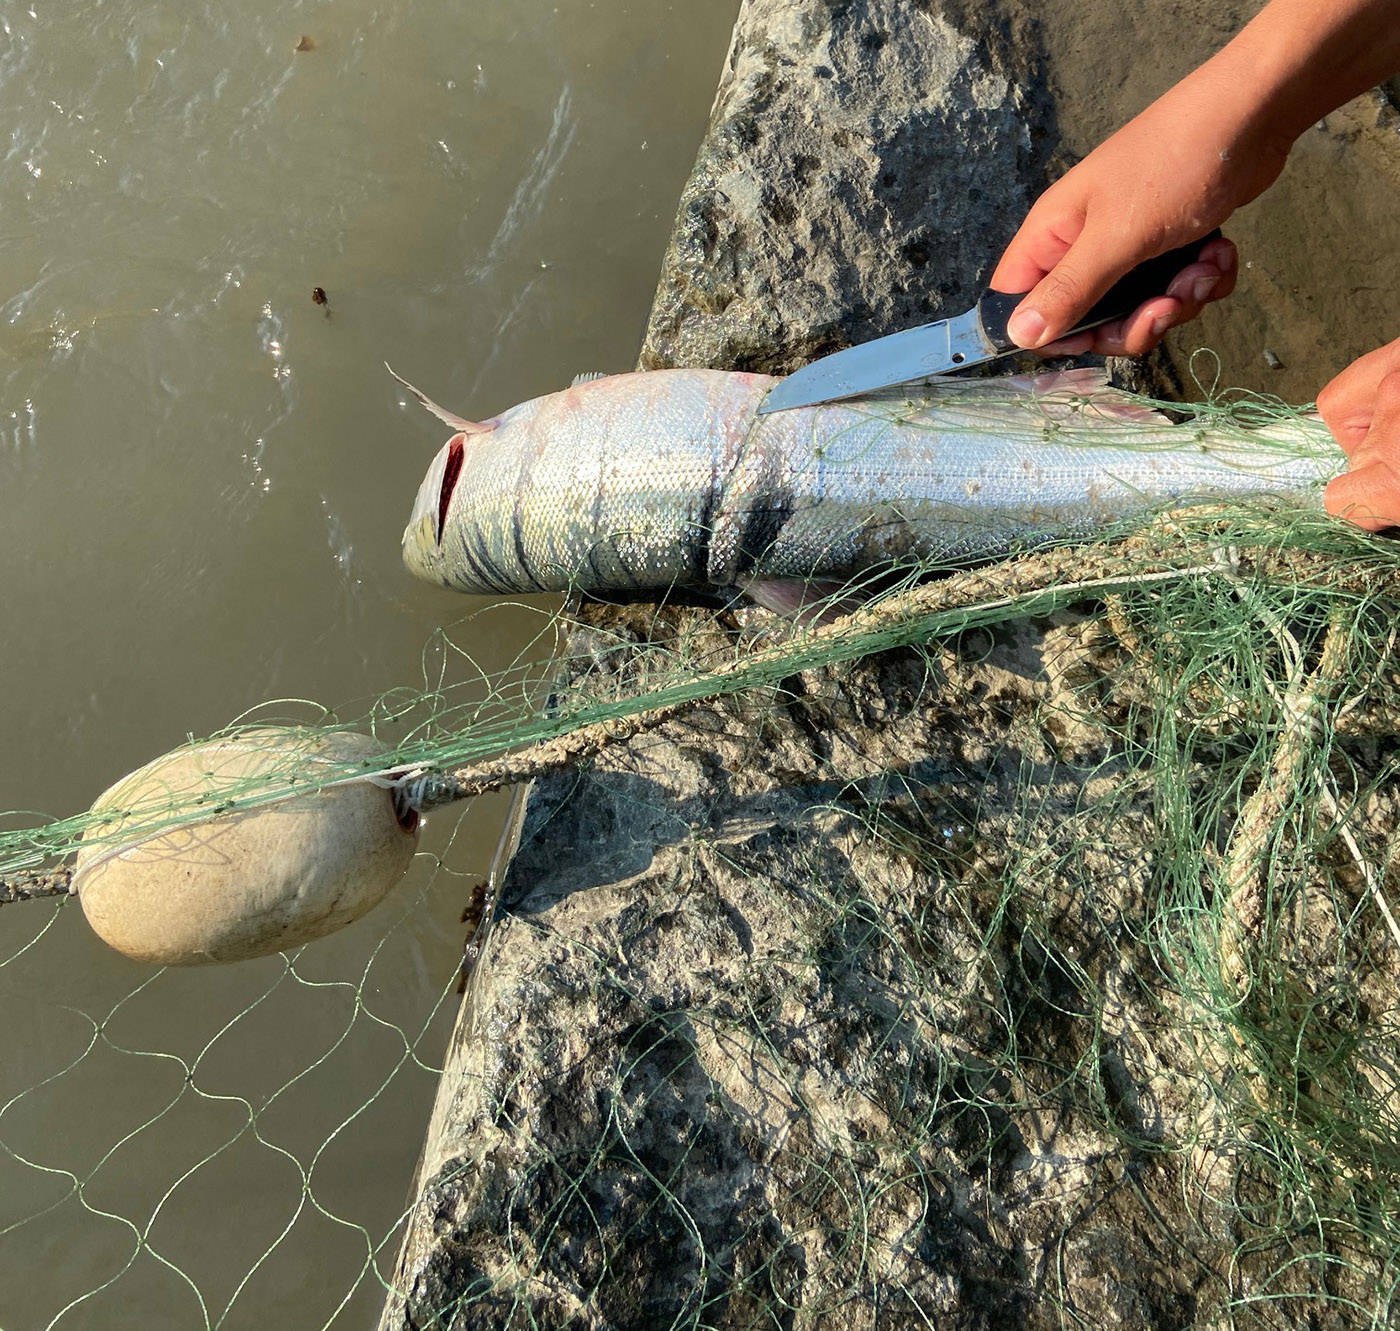 Between 200 and 250 illegal fishing nets have been seized on the Fraser River by DFO so far this year. (DFO)